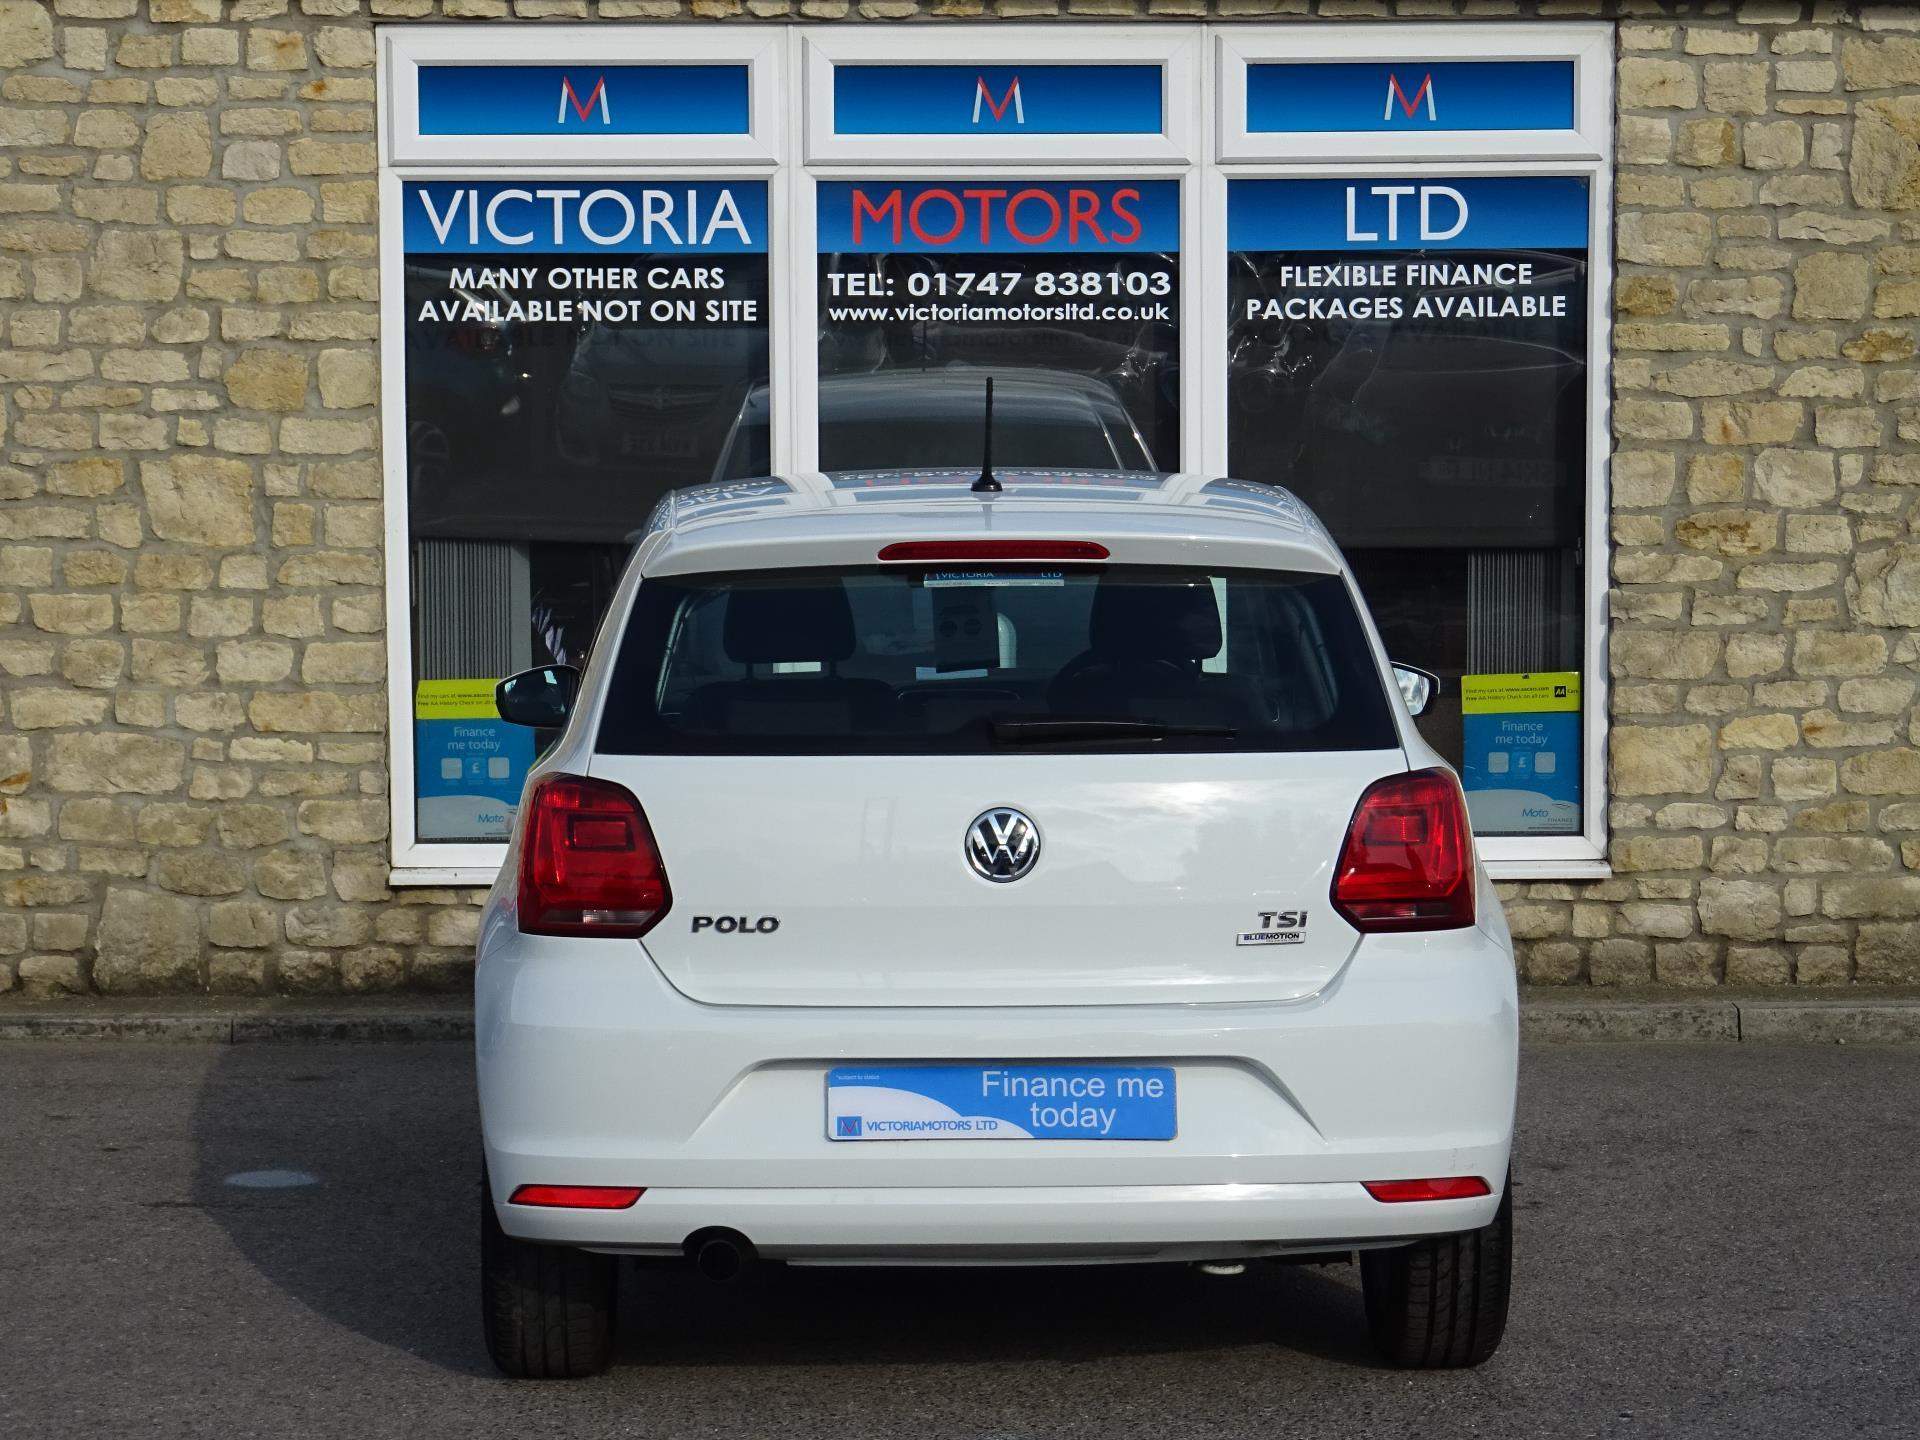 Used Vw Cars for Sale Near Me Best Of Used Vw Cars for Sale Near Me